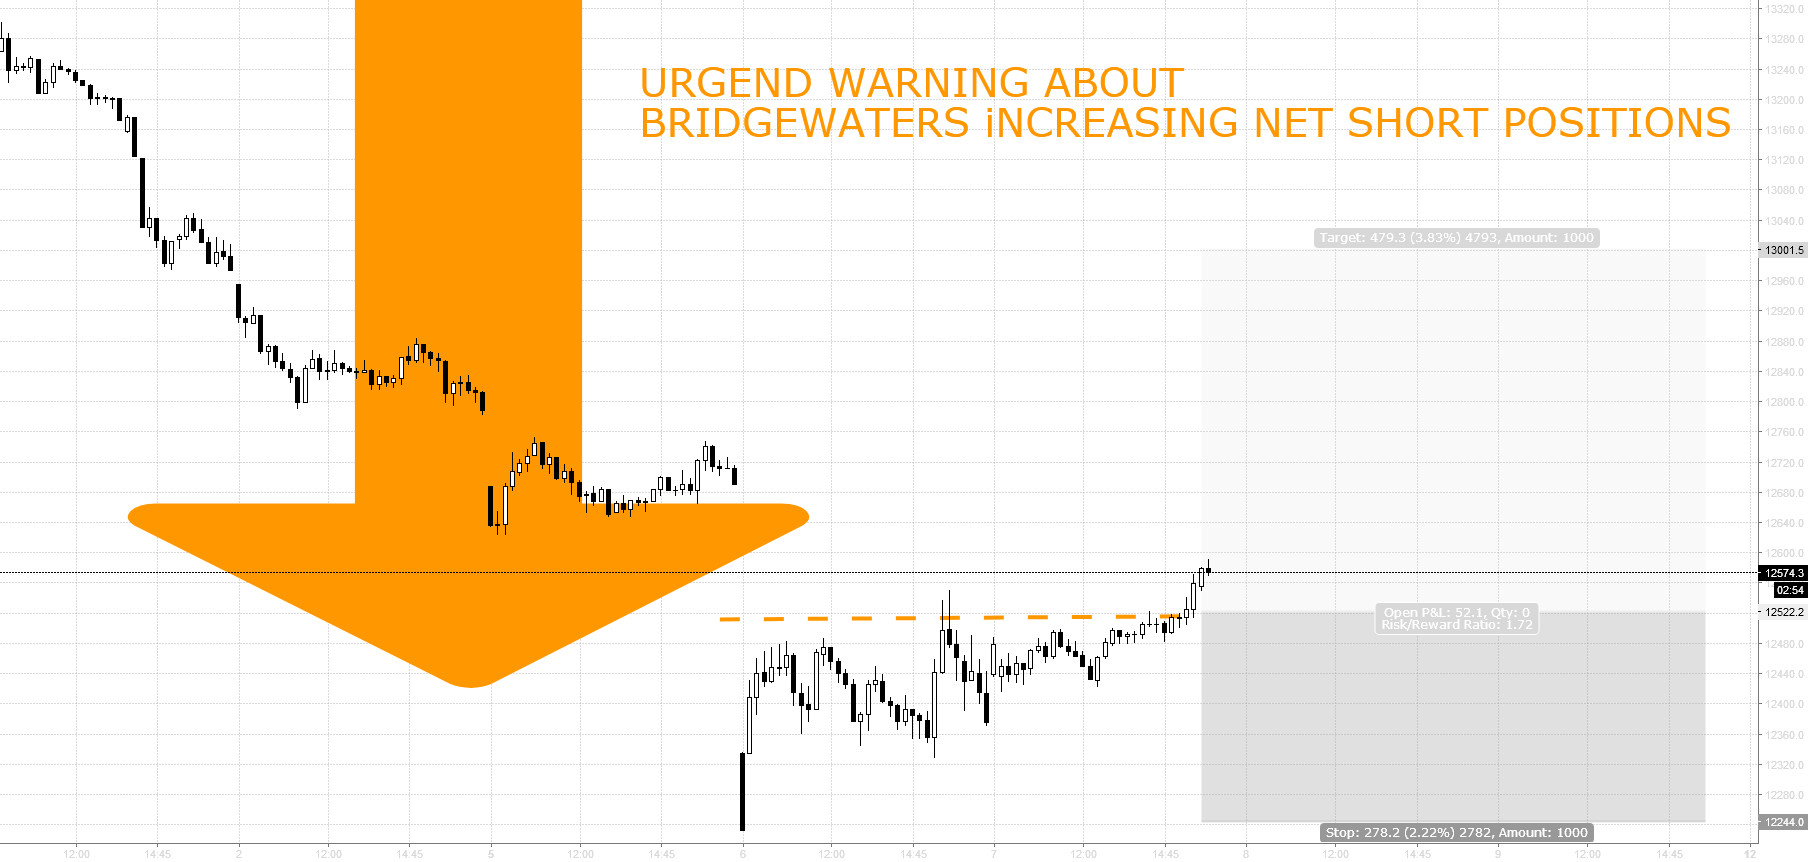 URGENT WARNING ABOUT BRIDGEWATERS INCREASING NET SHORT POSITONS